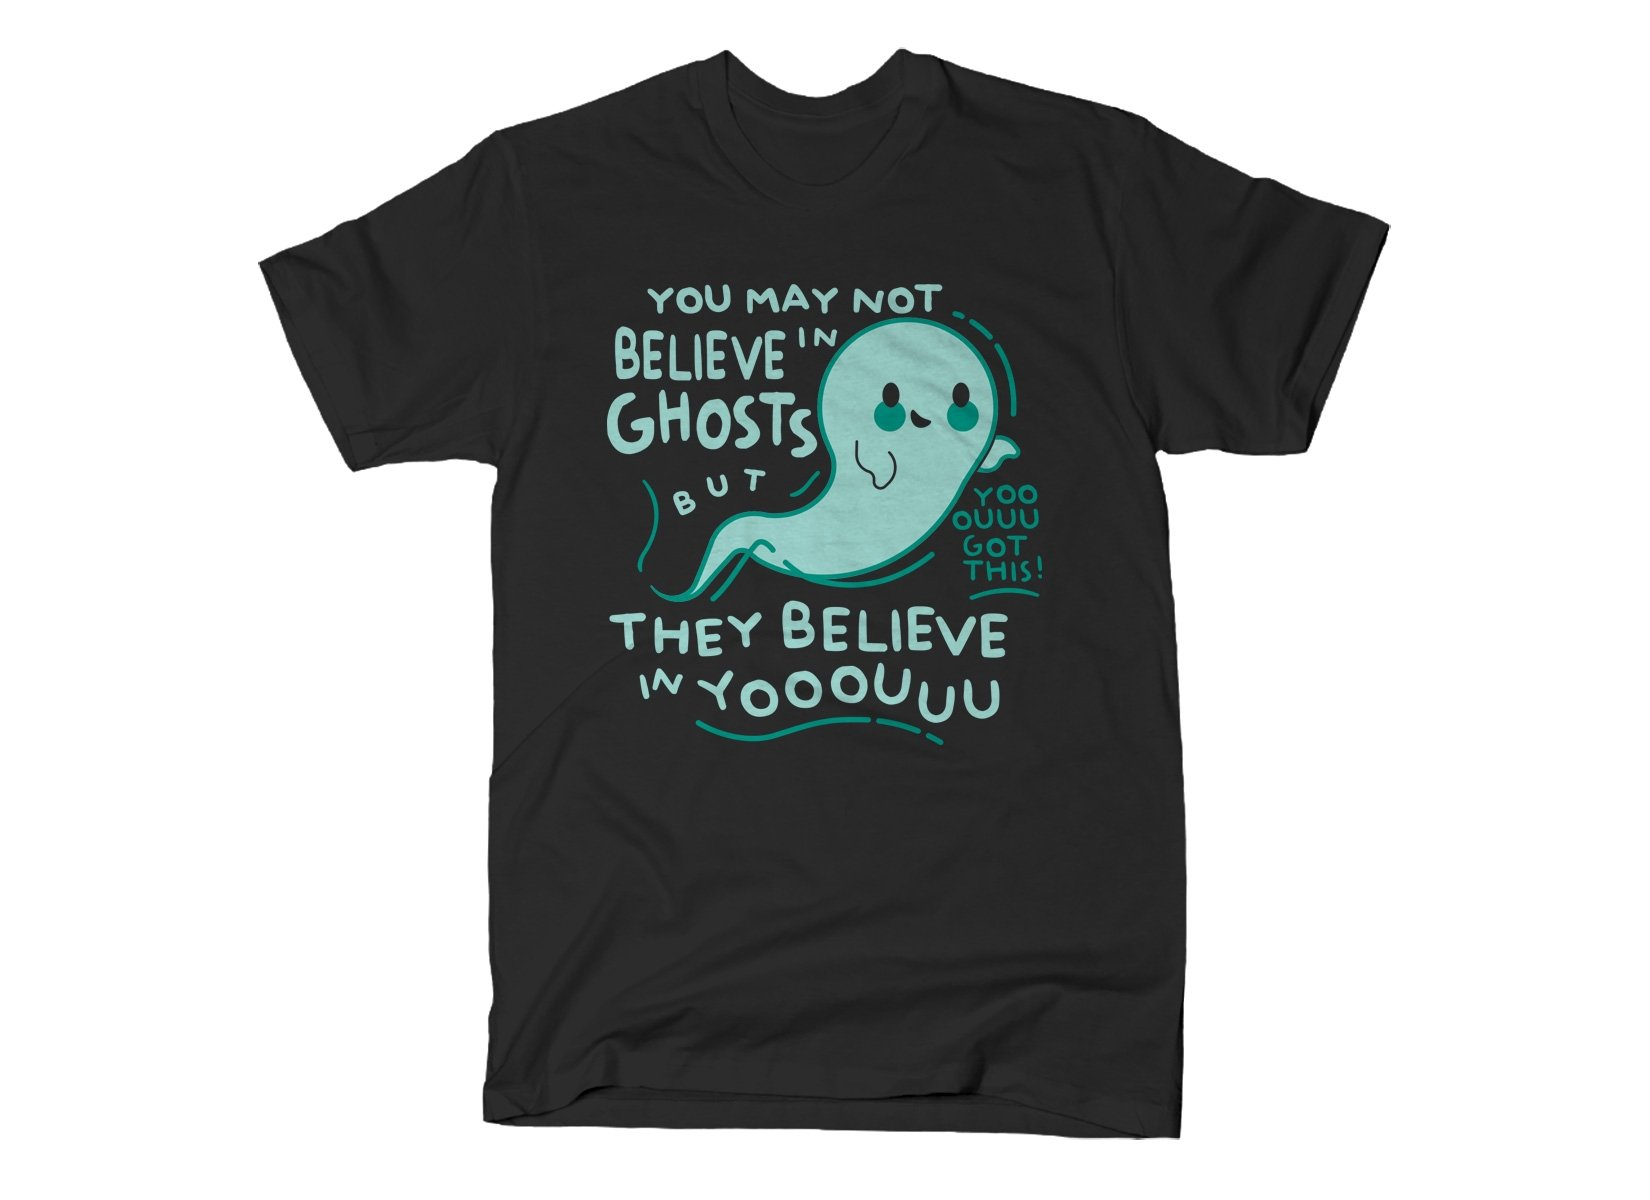 You May Not Believe In Ghosts on Mens T-Shirt